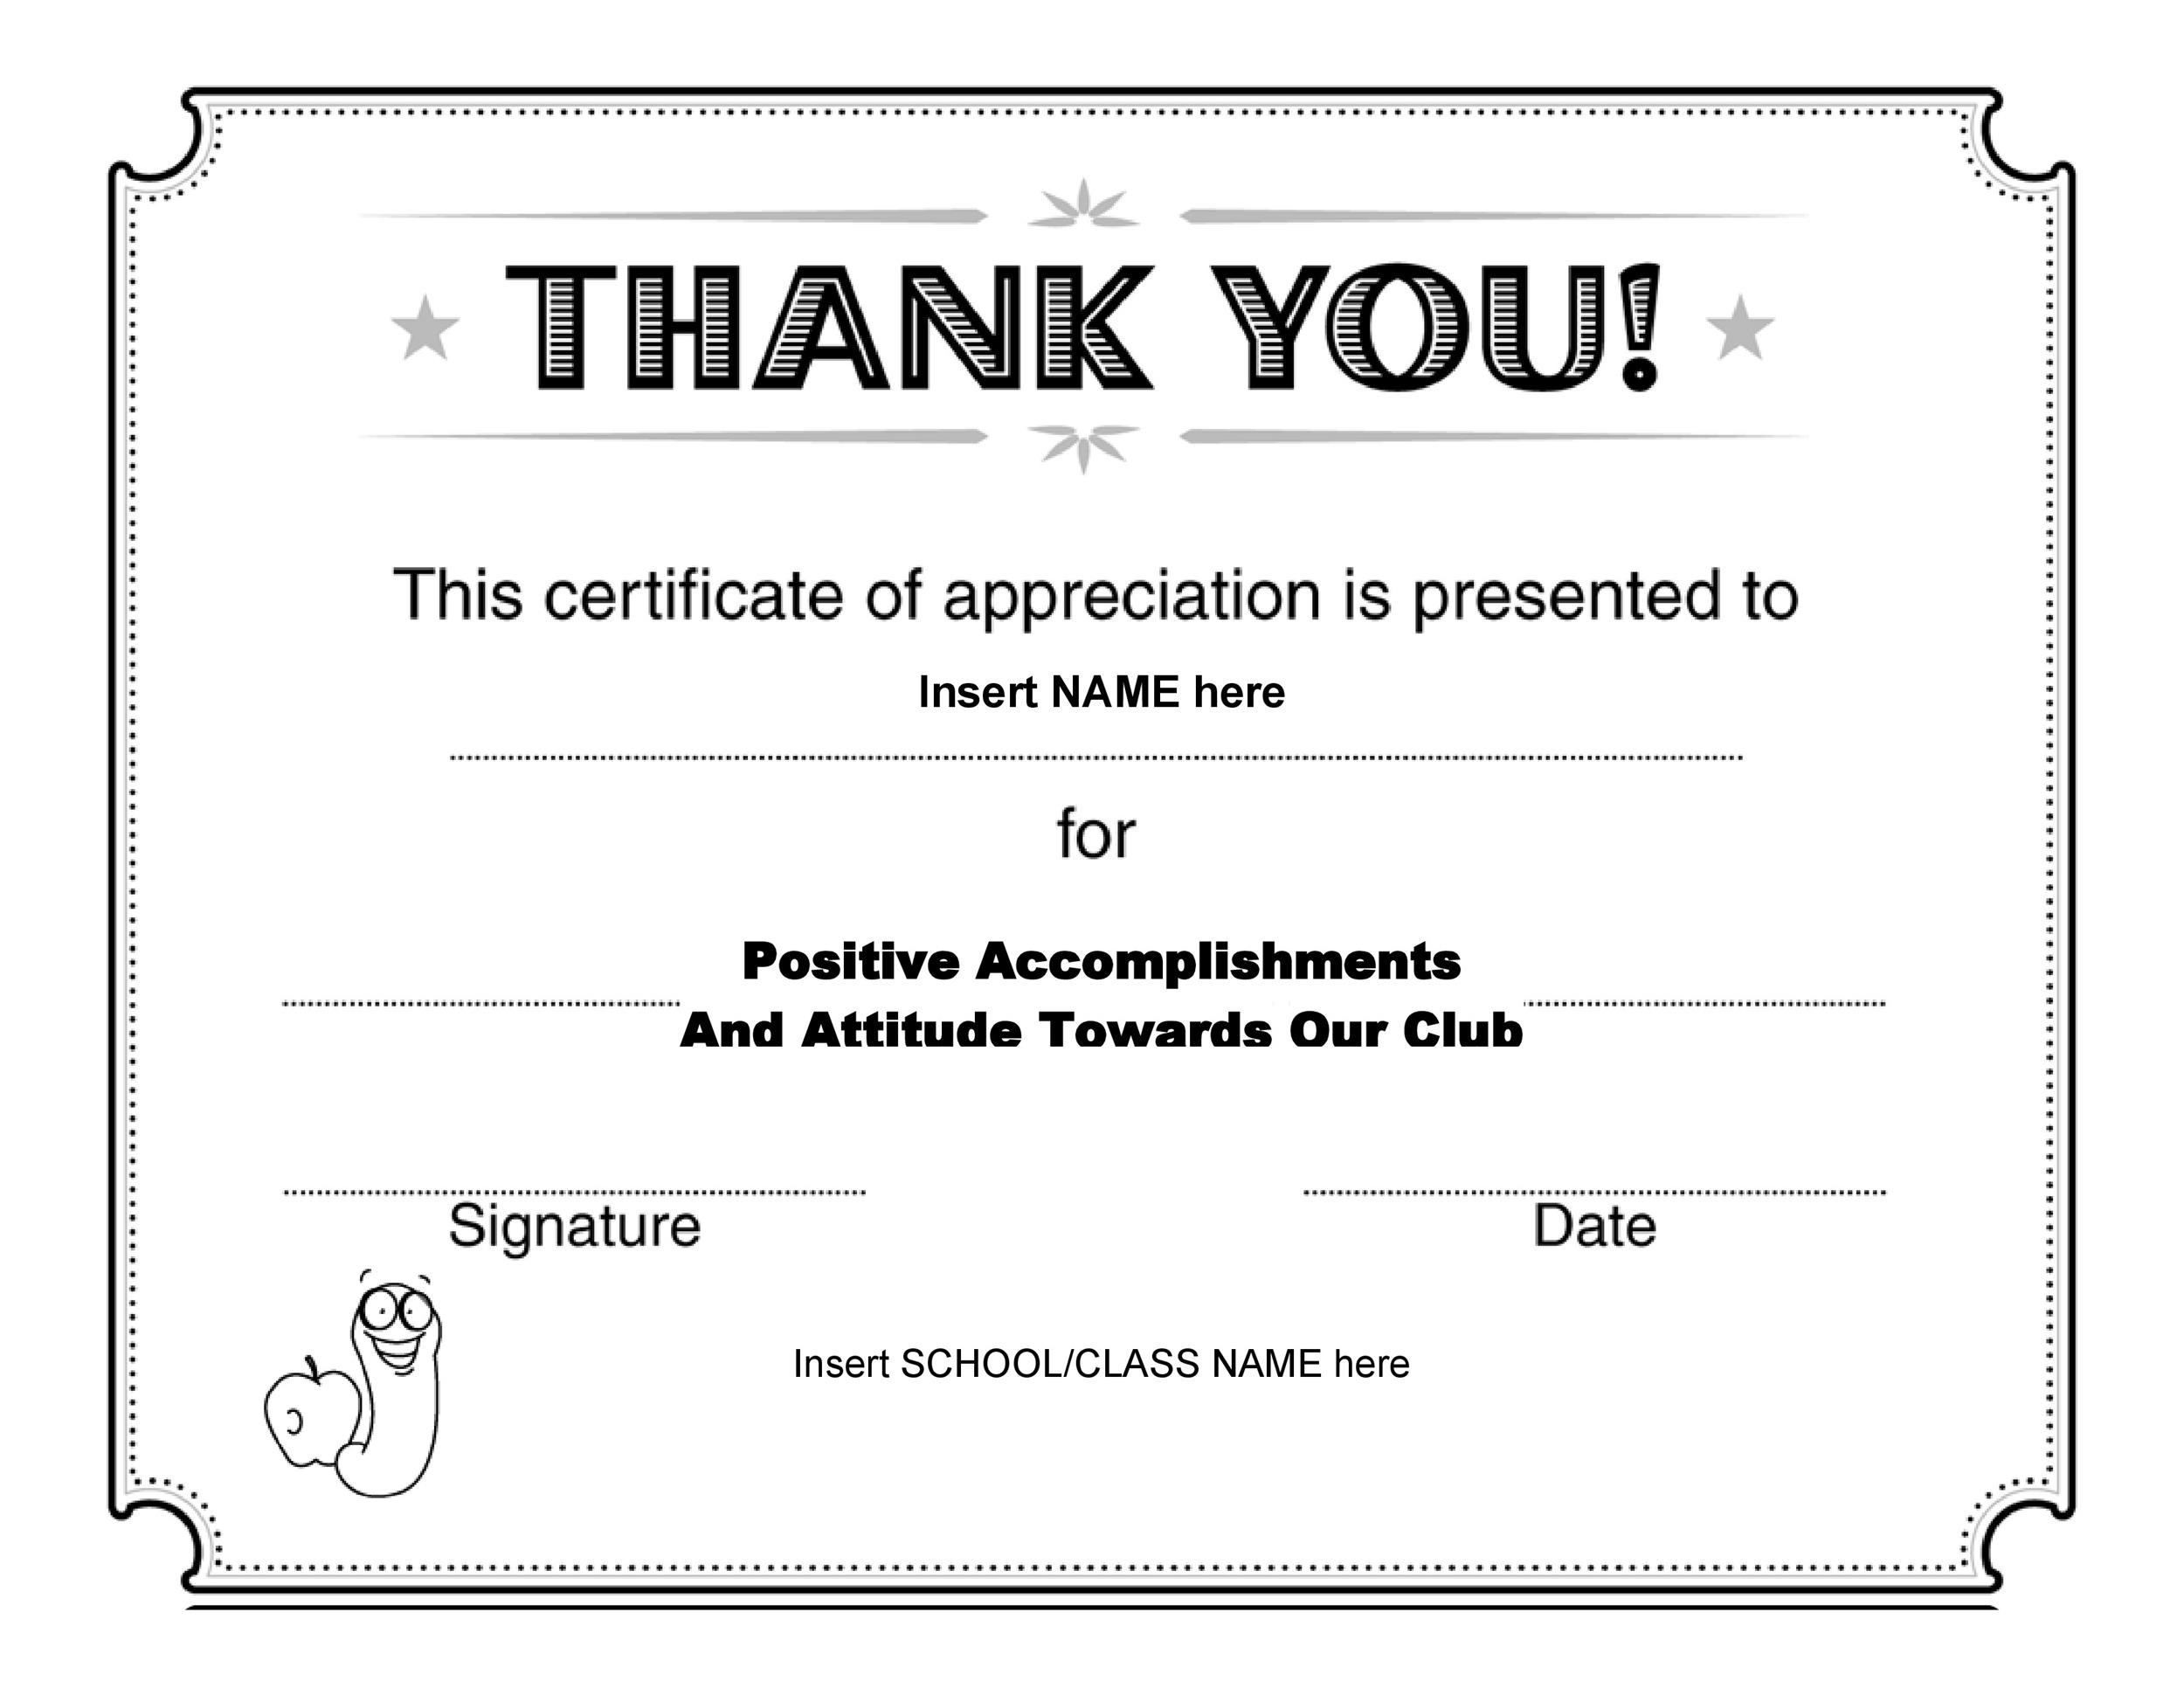 appreciation certificate templates free  30 Free Certificate of Appreciation Templates and Letters